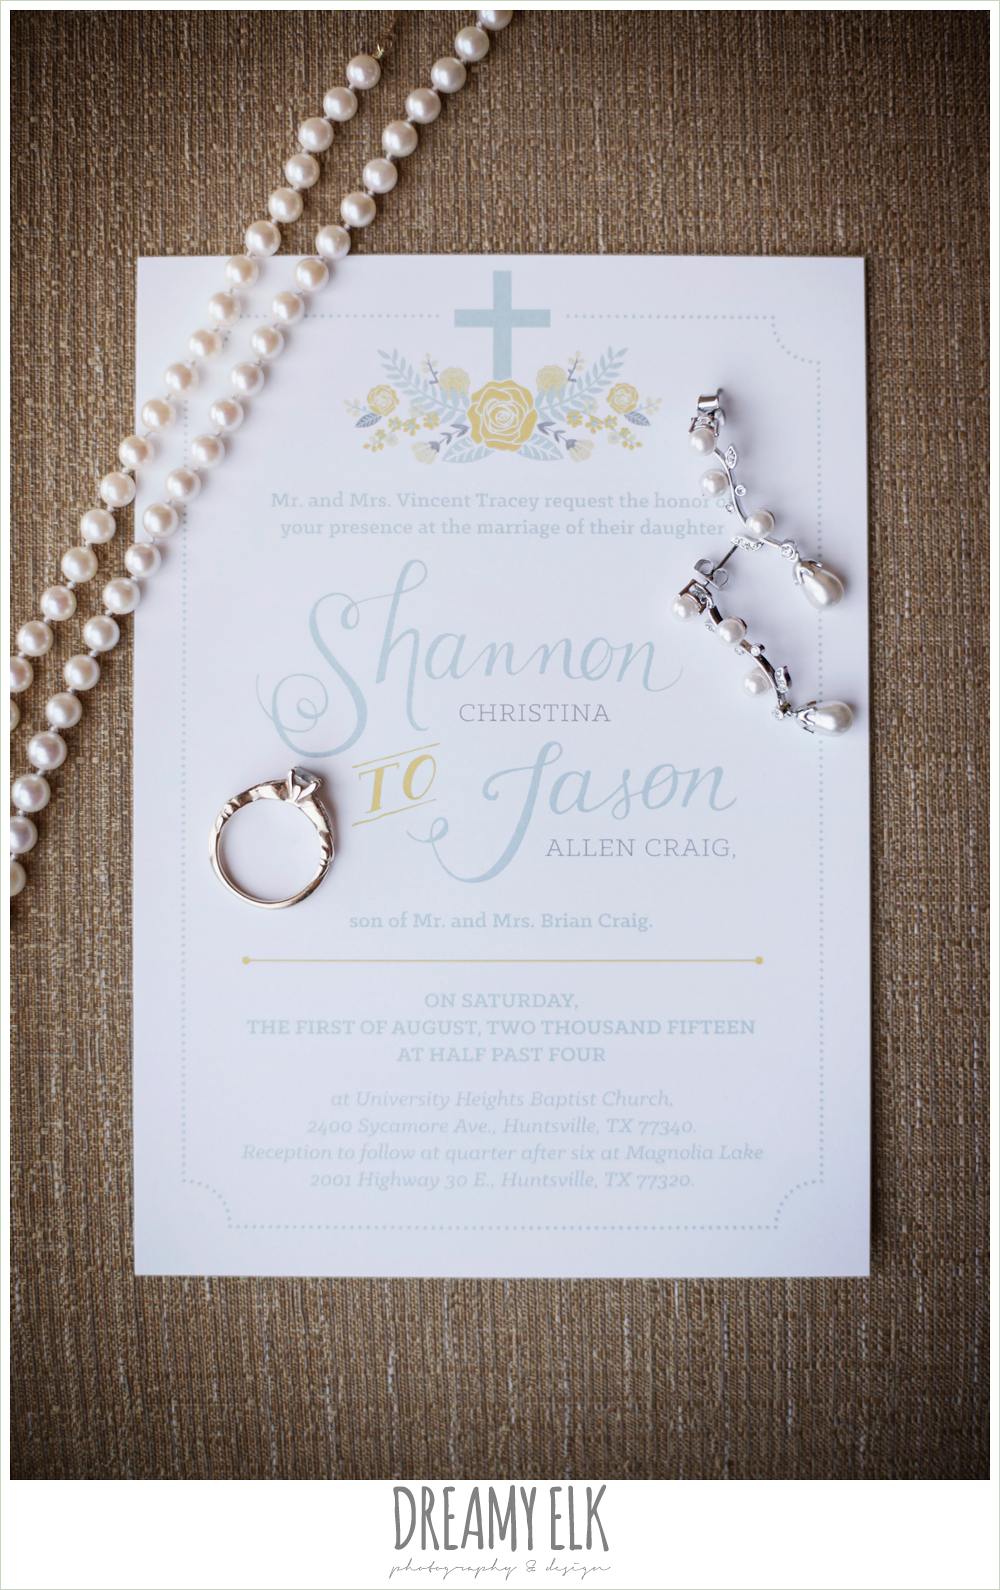 blue and yellow wedding invitation, wedding jewelry, summer wedding photo {dreamy elk photography and design}